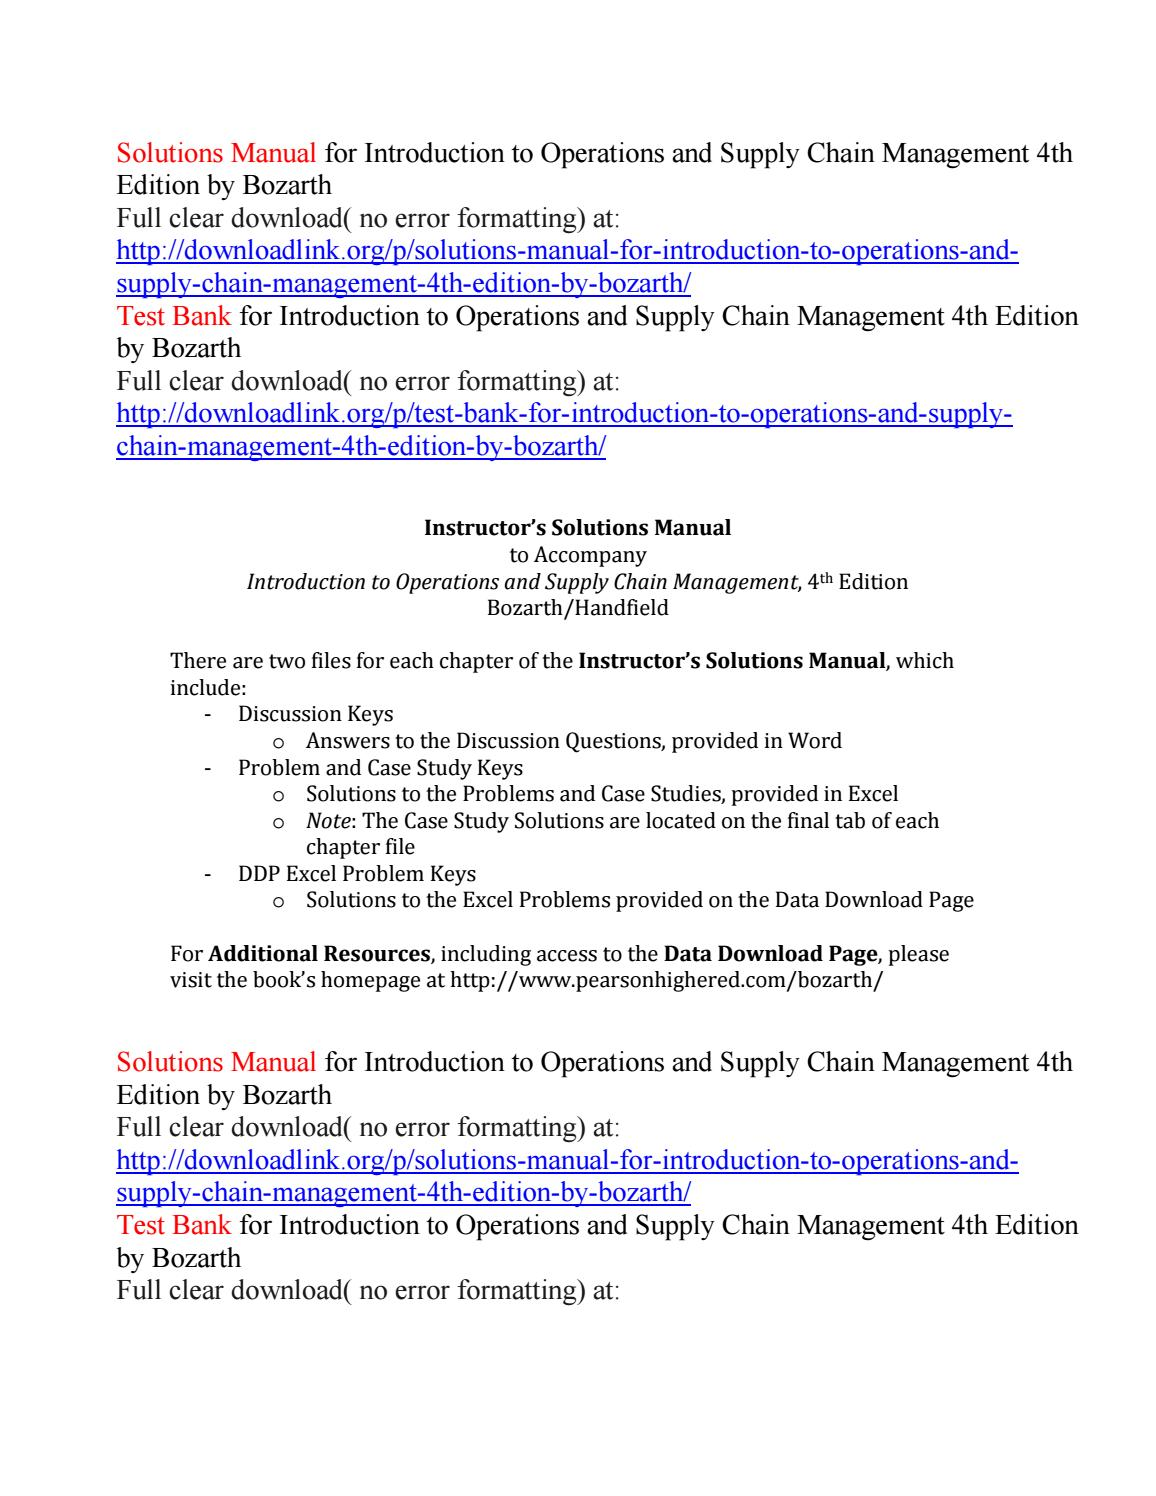 Solutions manual for introduction to operations and supply chain management 4th  edition by bozarth by Daisy1829 - issuu